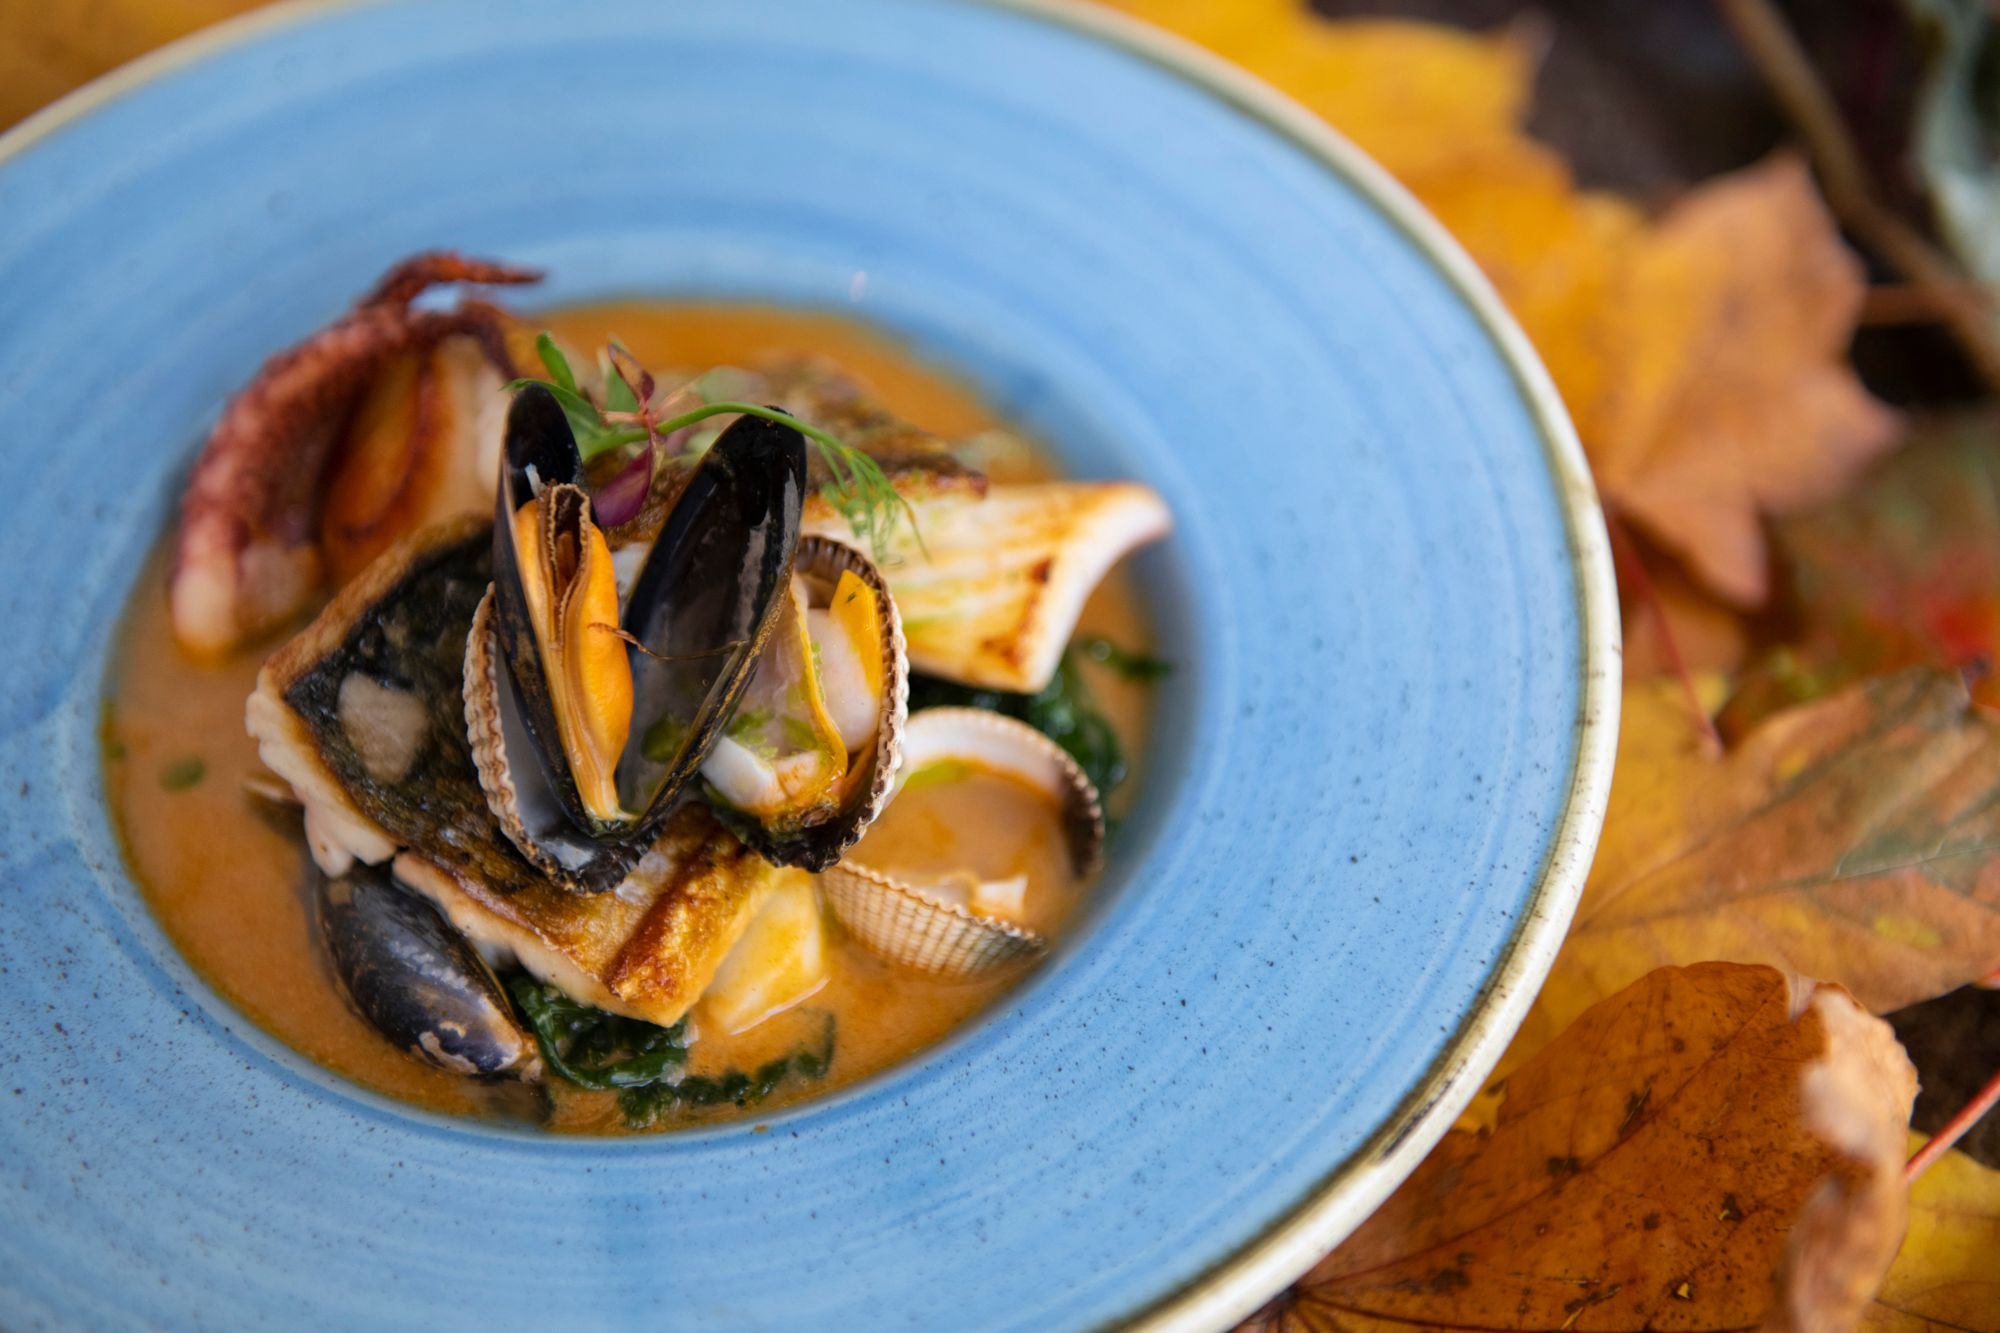 mussels soup served in blue plate with leaf background, autumn vibes